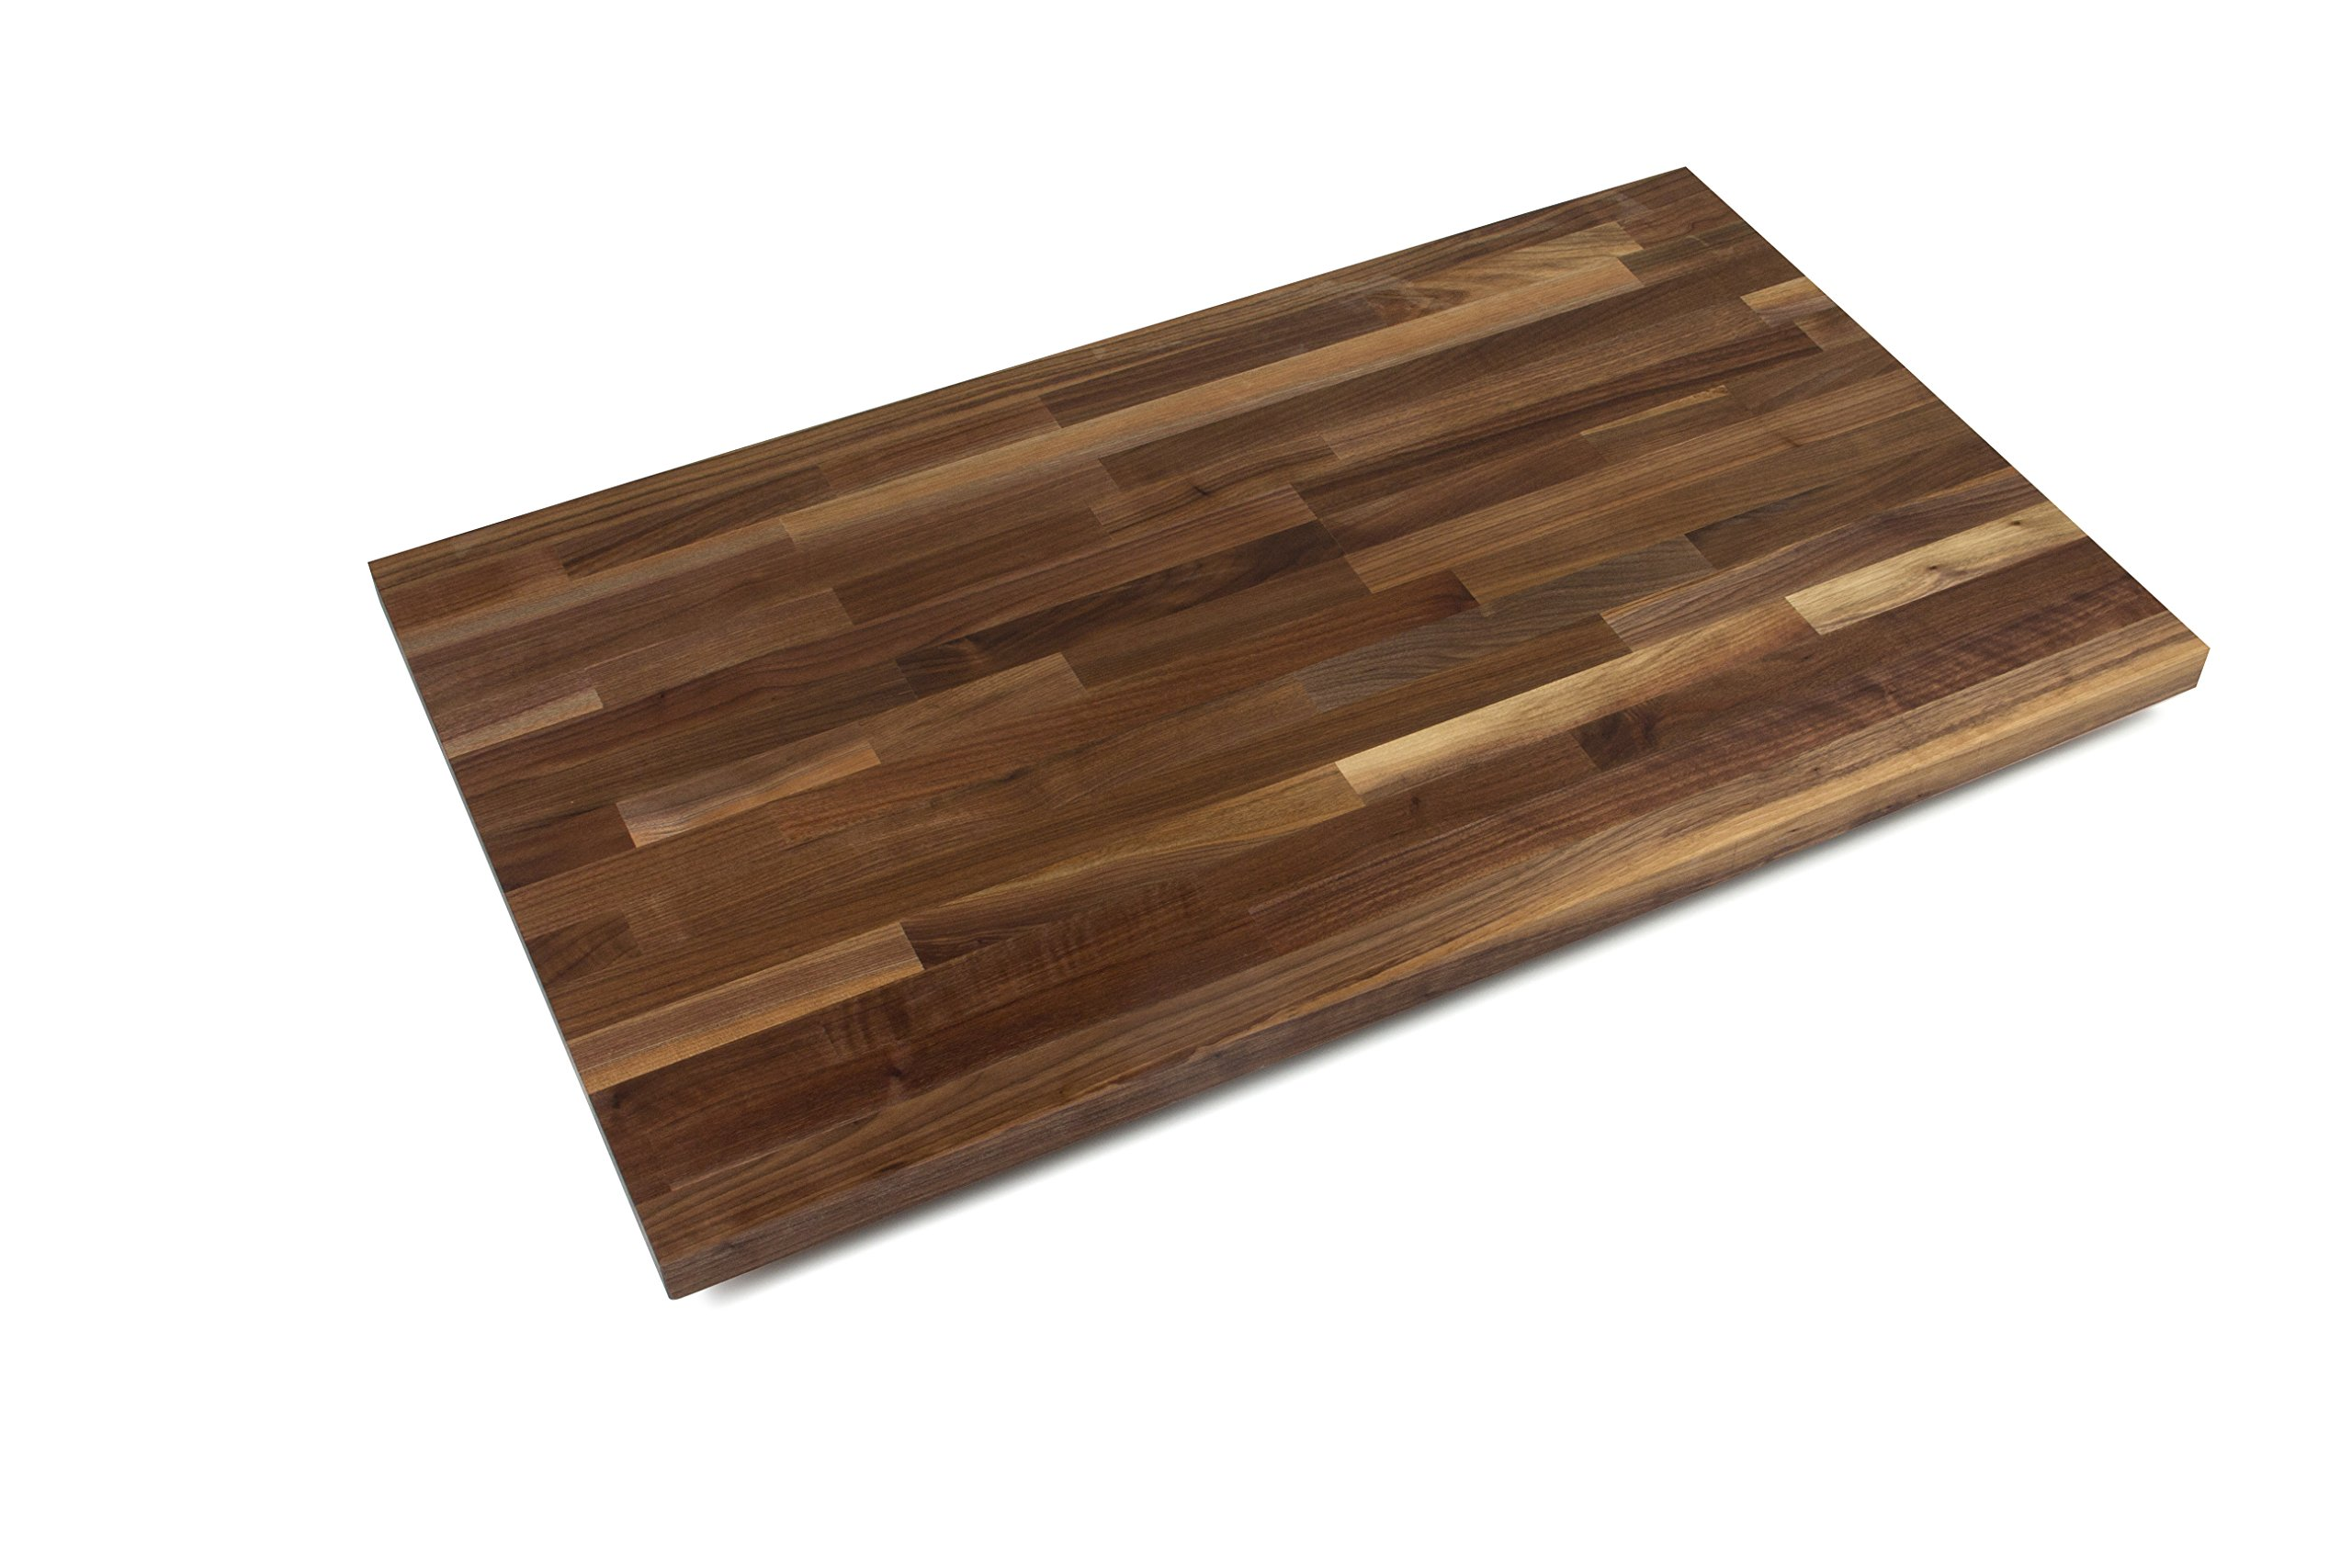 John Boos WALKCT-BL6025-O Blended Walnut Counter Top with Oil Finish, 1.5'' Thickness, 60'' x 25''